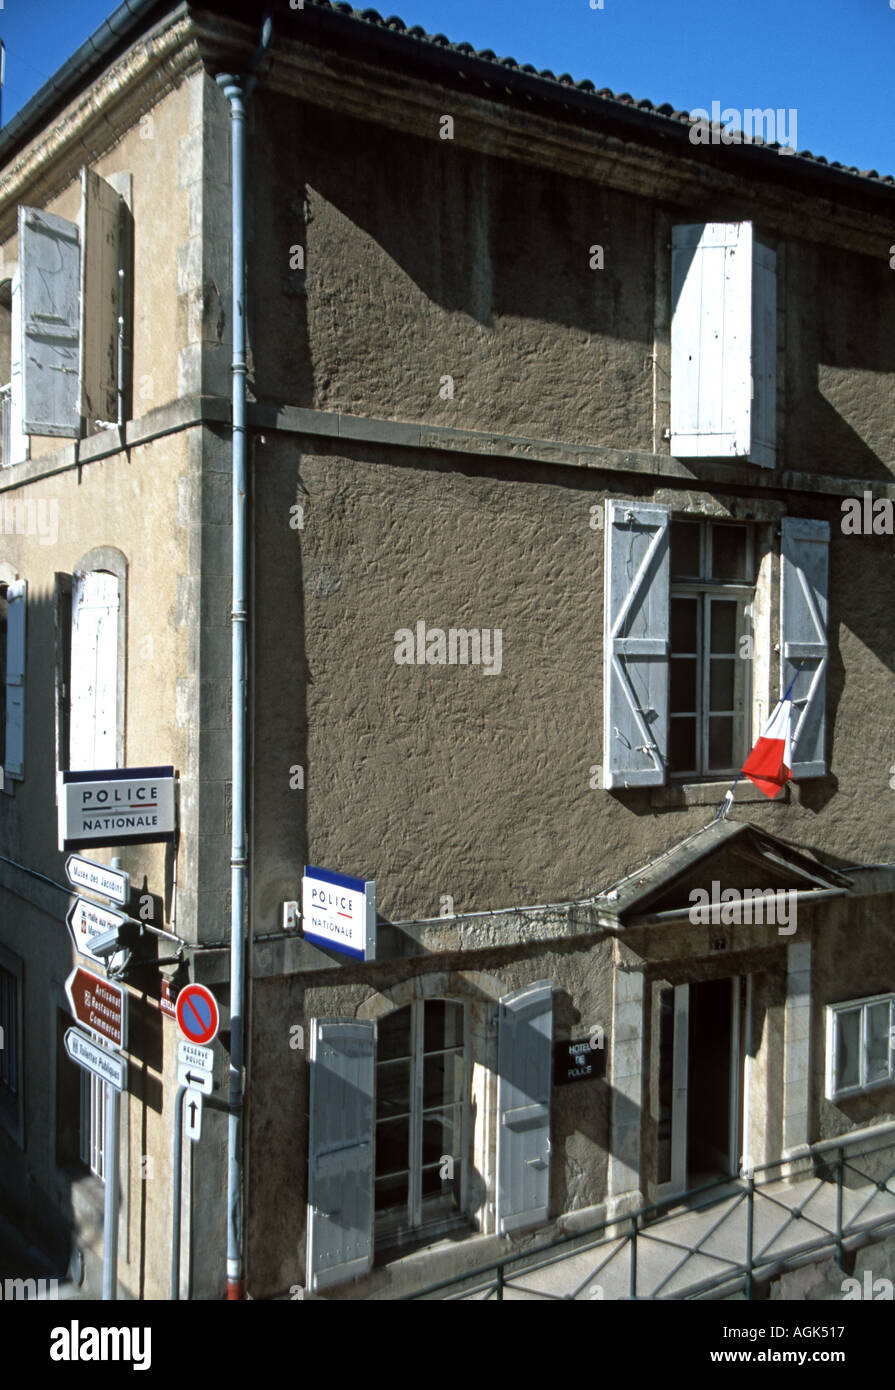 The Hotel de Police at Auch - Stock Image